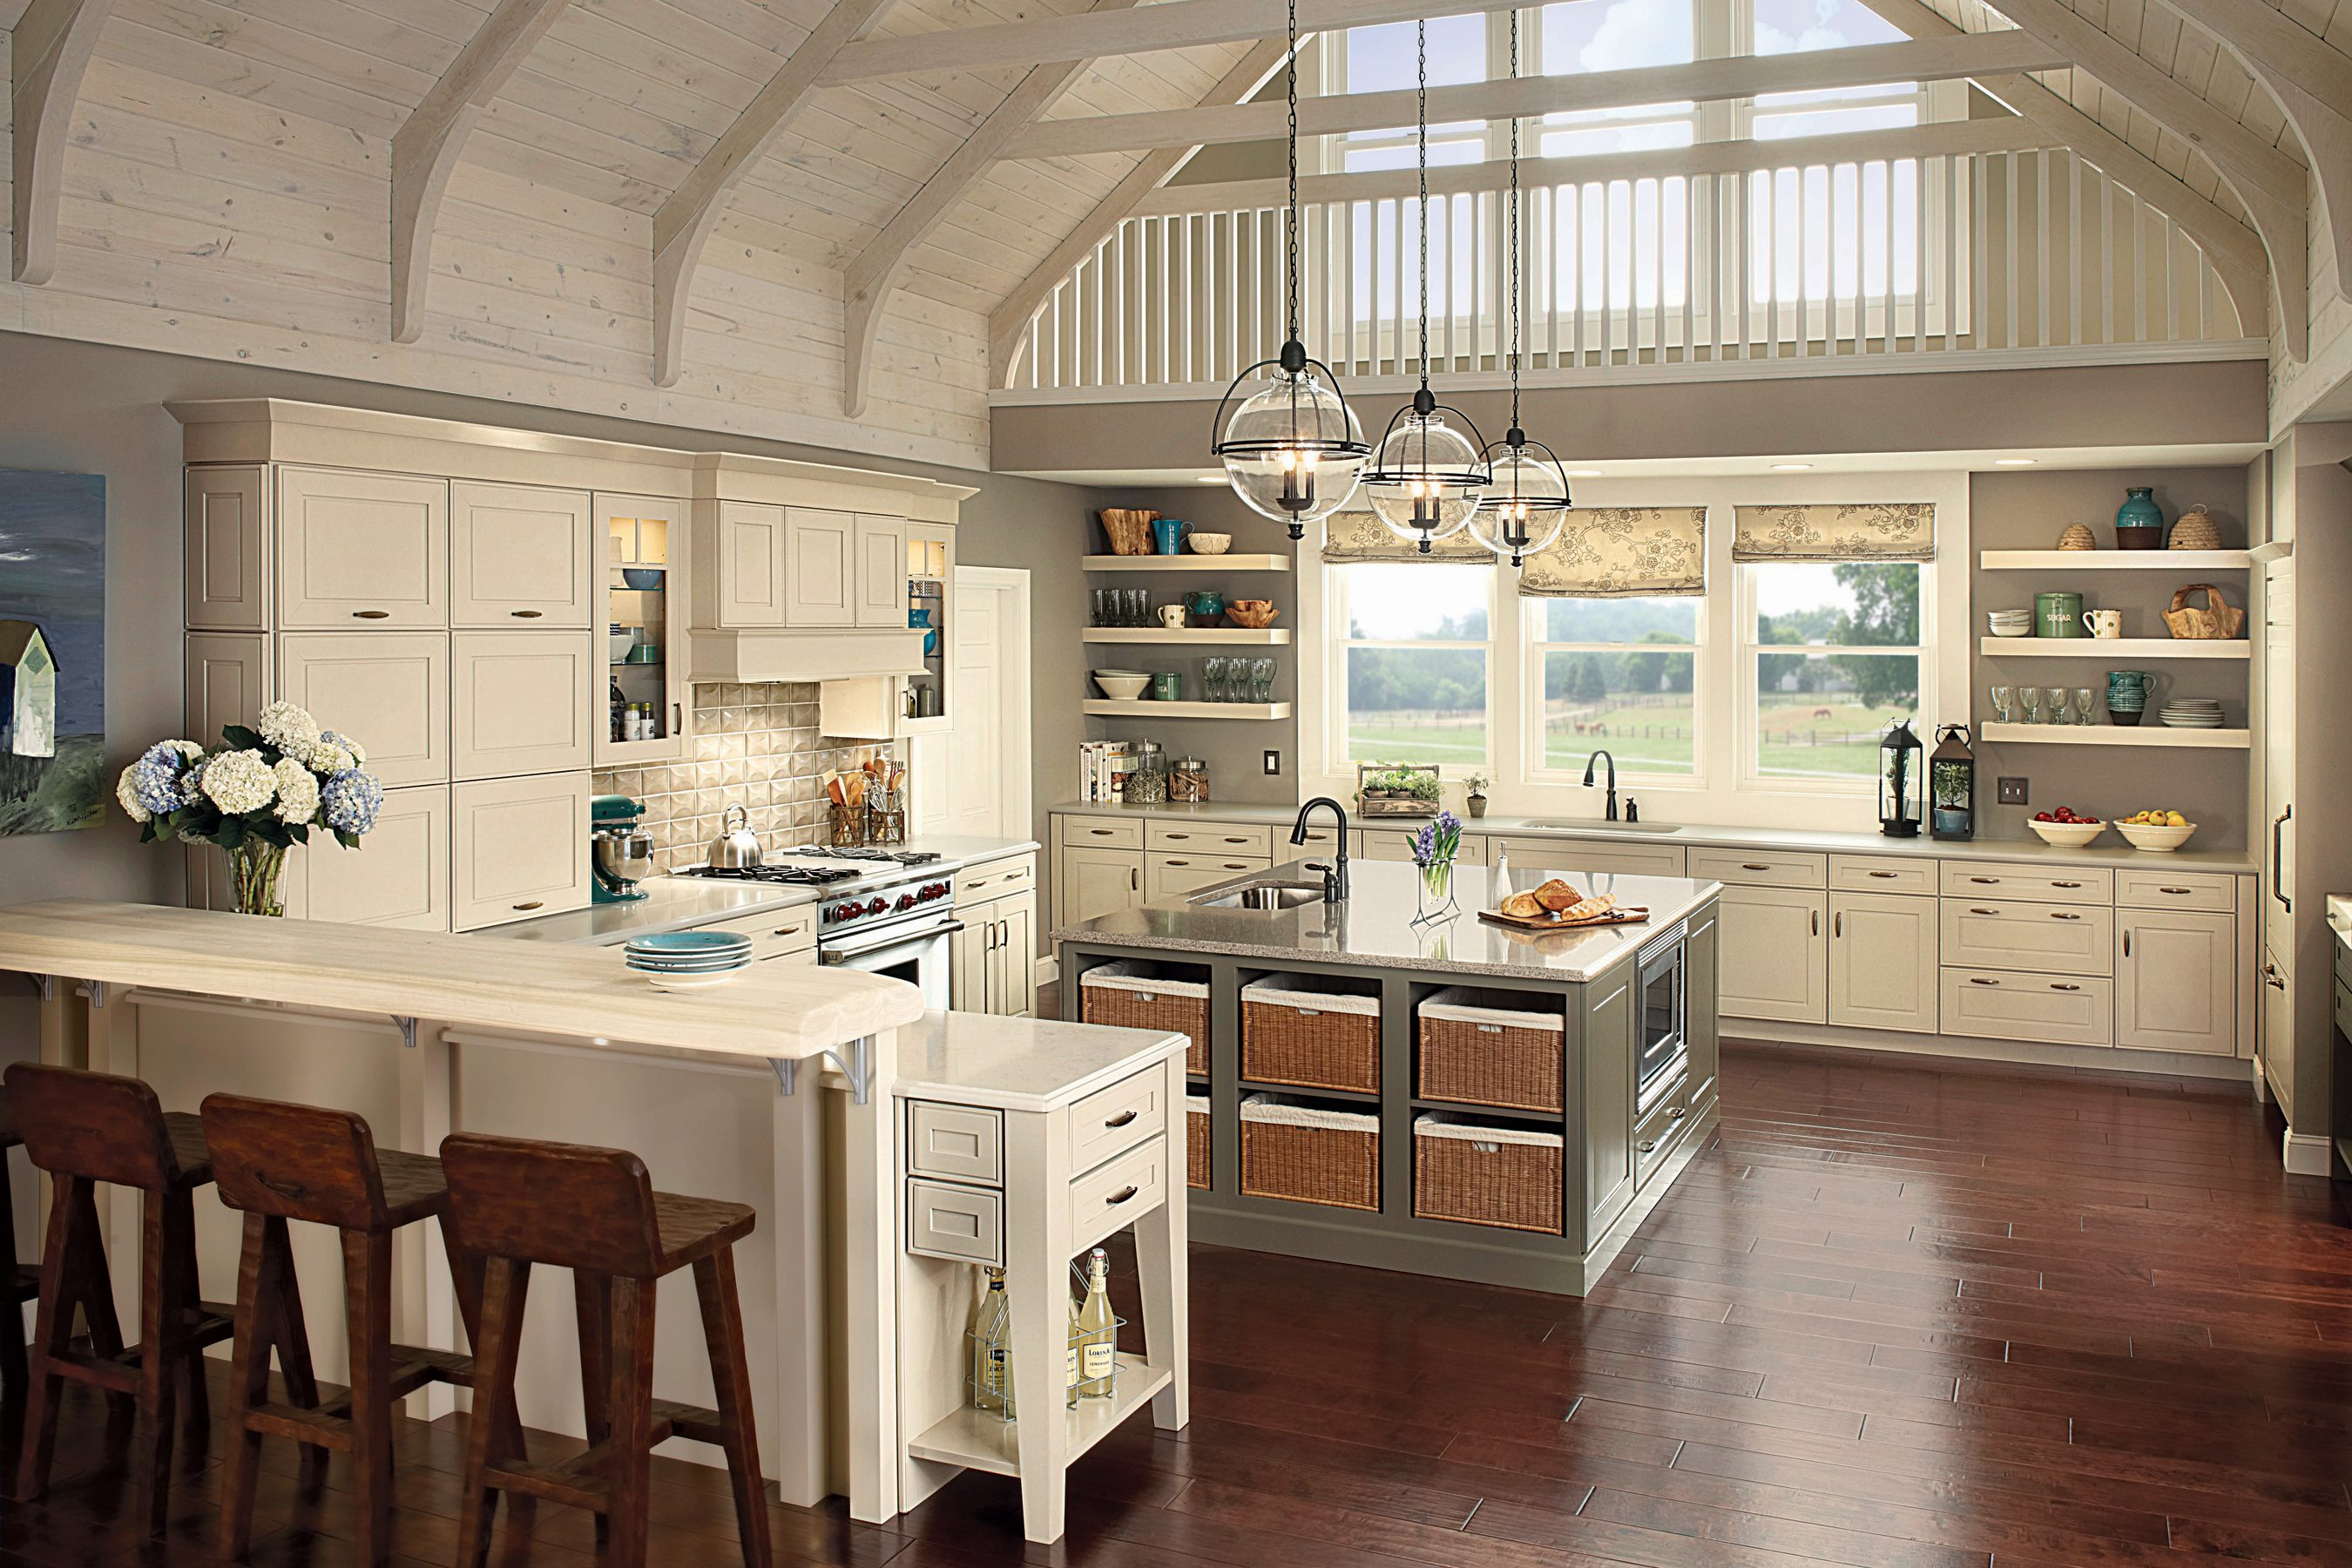 Kraftmaid Office Cabinets Home And Cabinet Reviews